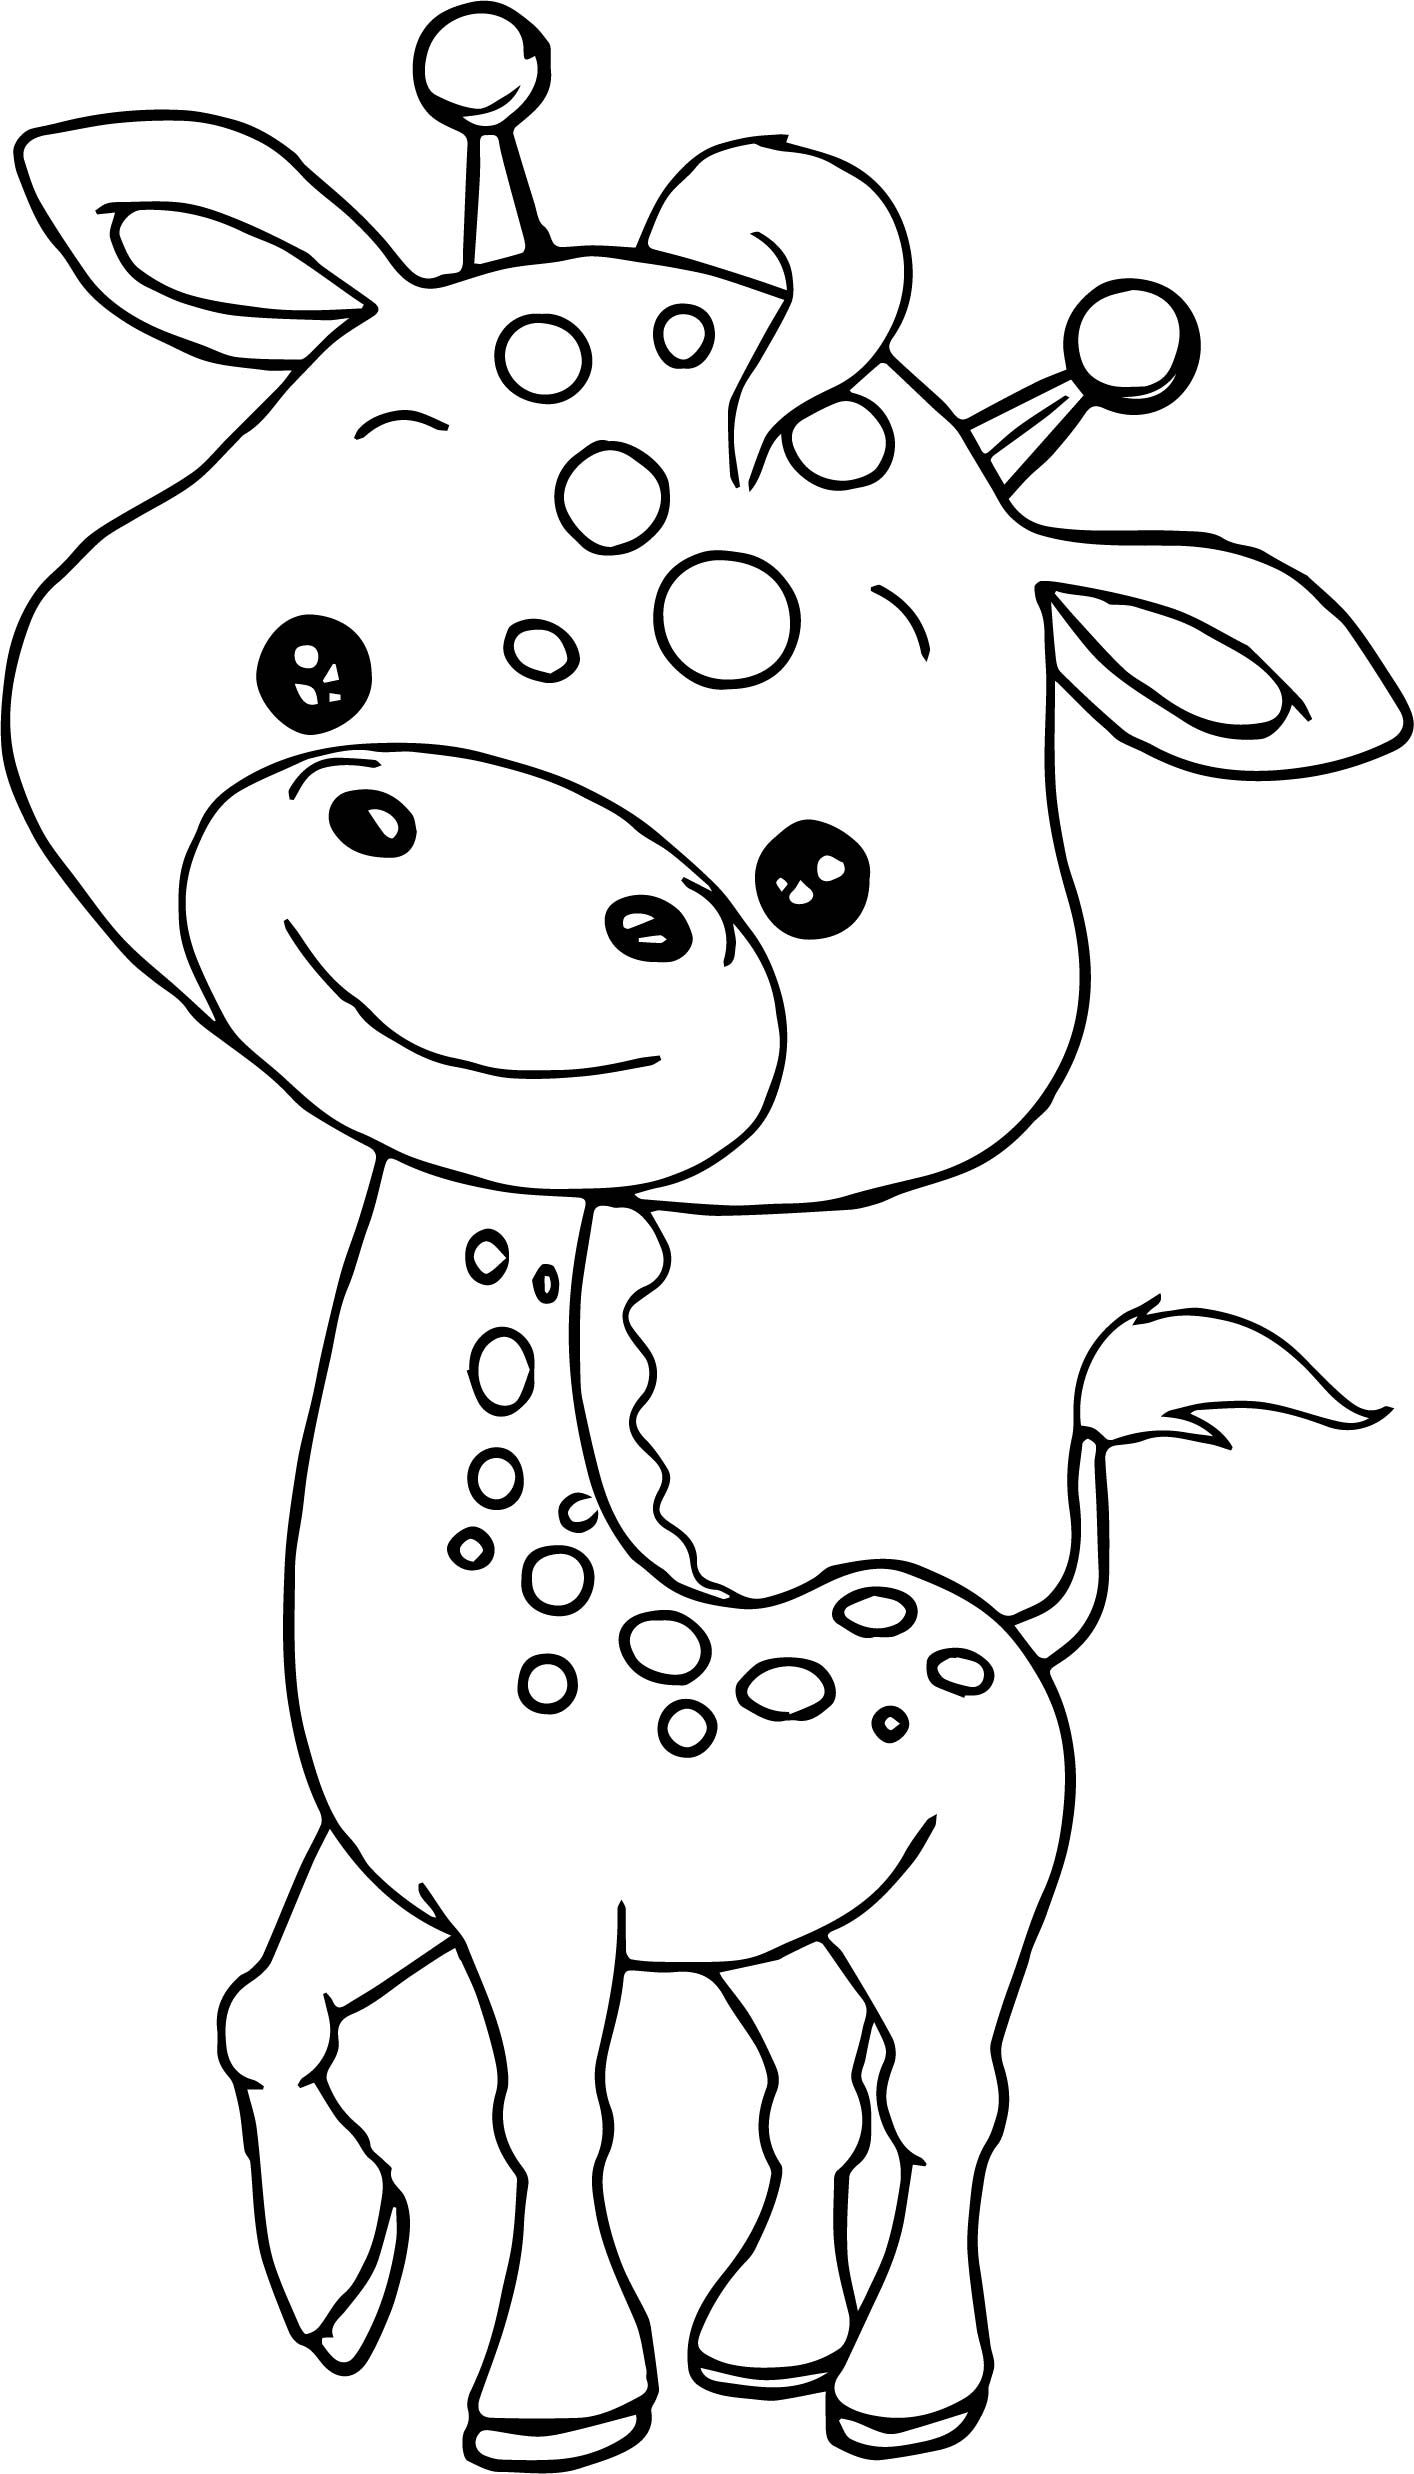 jungle animal coloring pages jungle animals coloring pages free coloring home coloring animal pages jungle